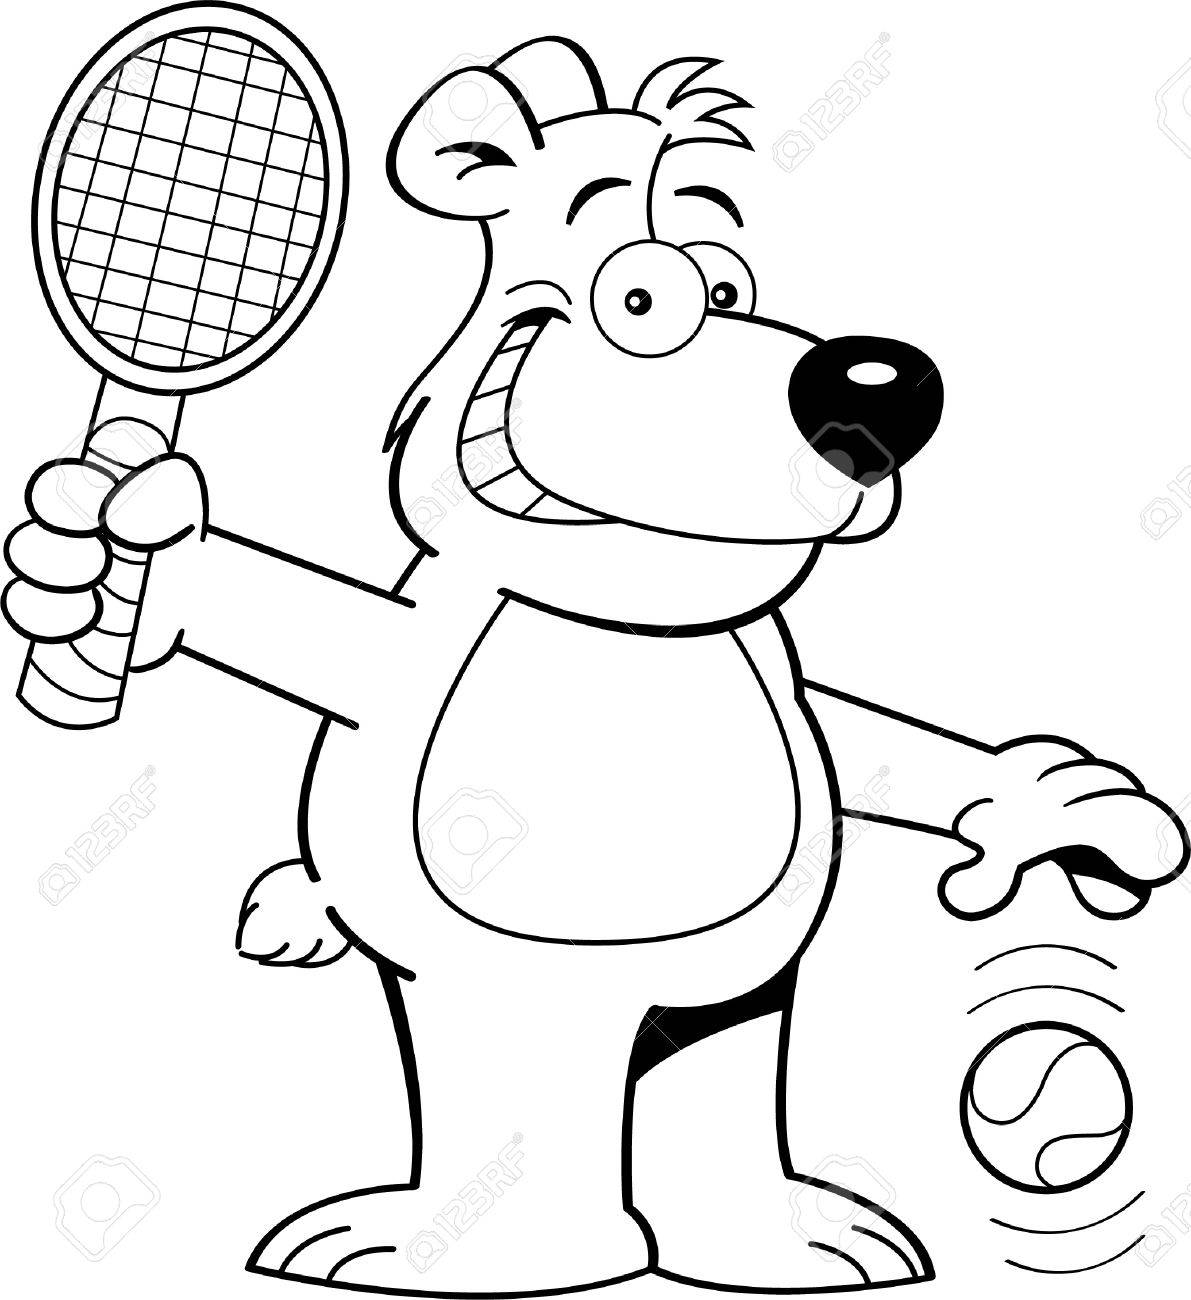 black and white illustration of a bear playing tennis royalty free